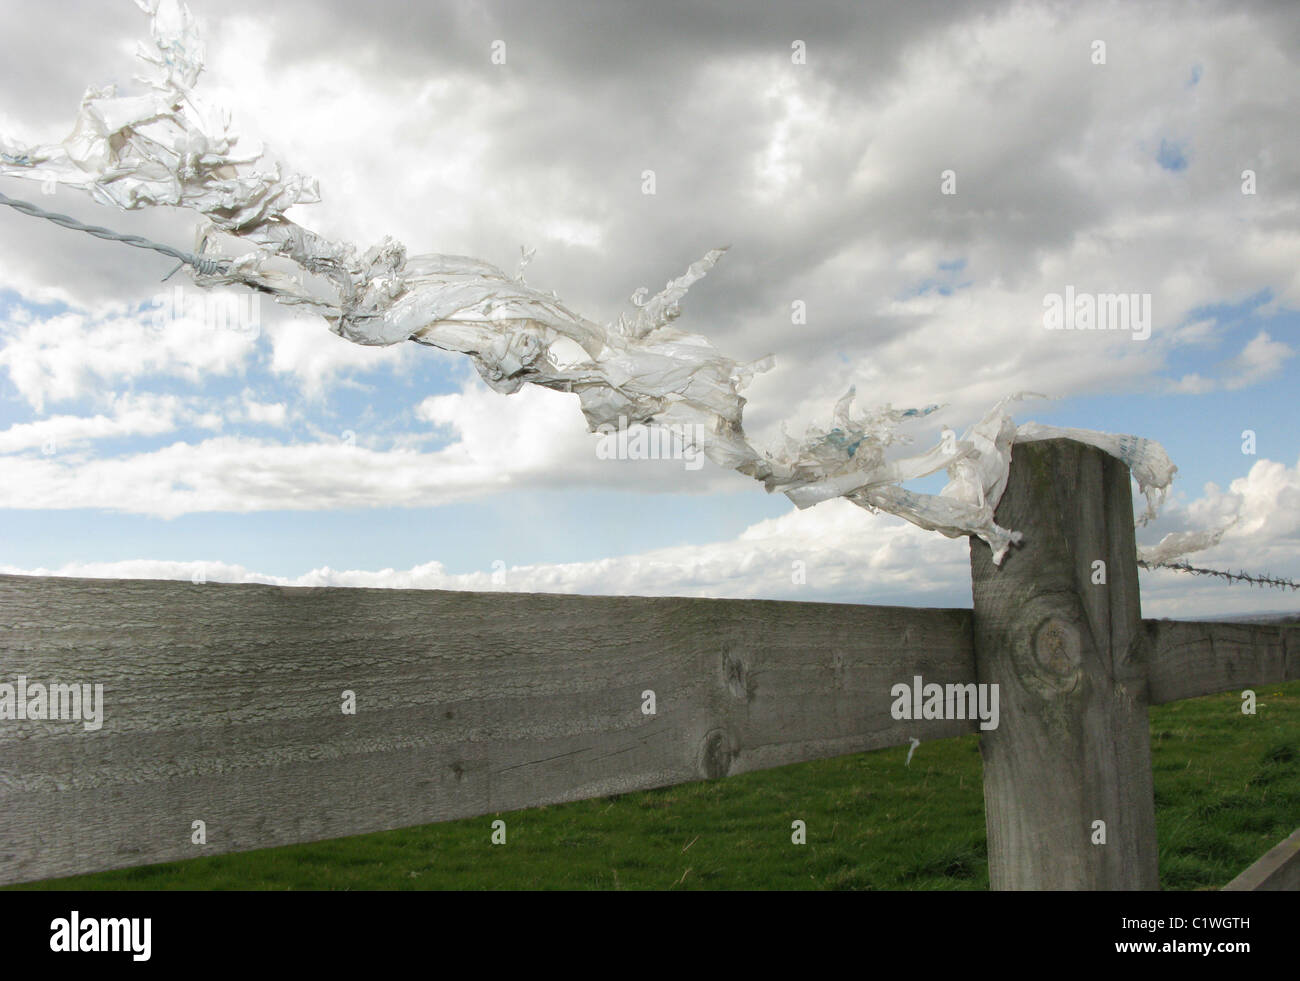 Barbed Wire Fence Post Around Stock Photos & Barbed Wire Fence Post ...